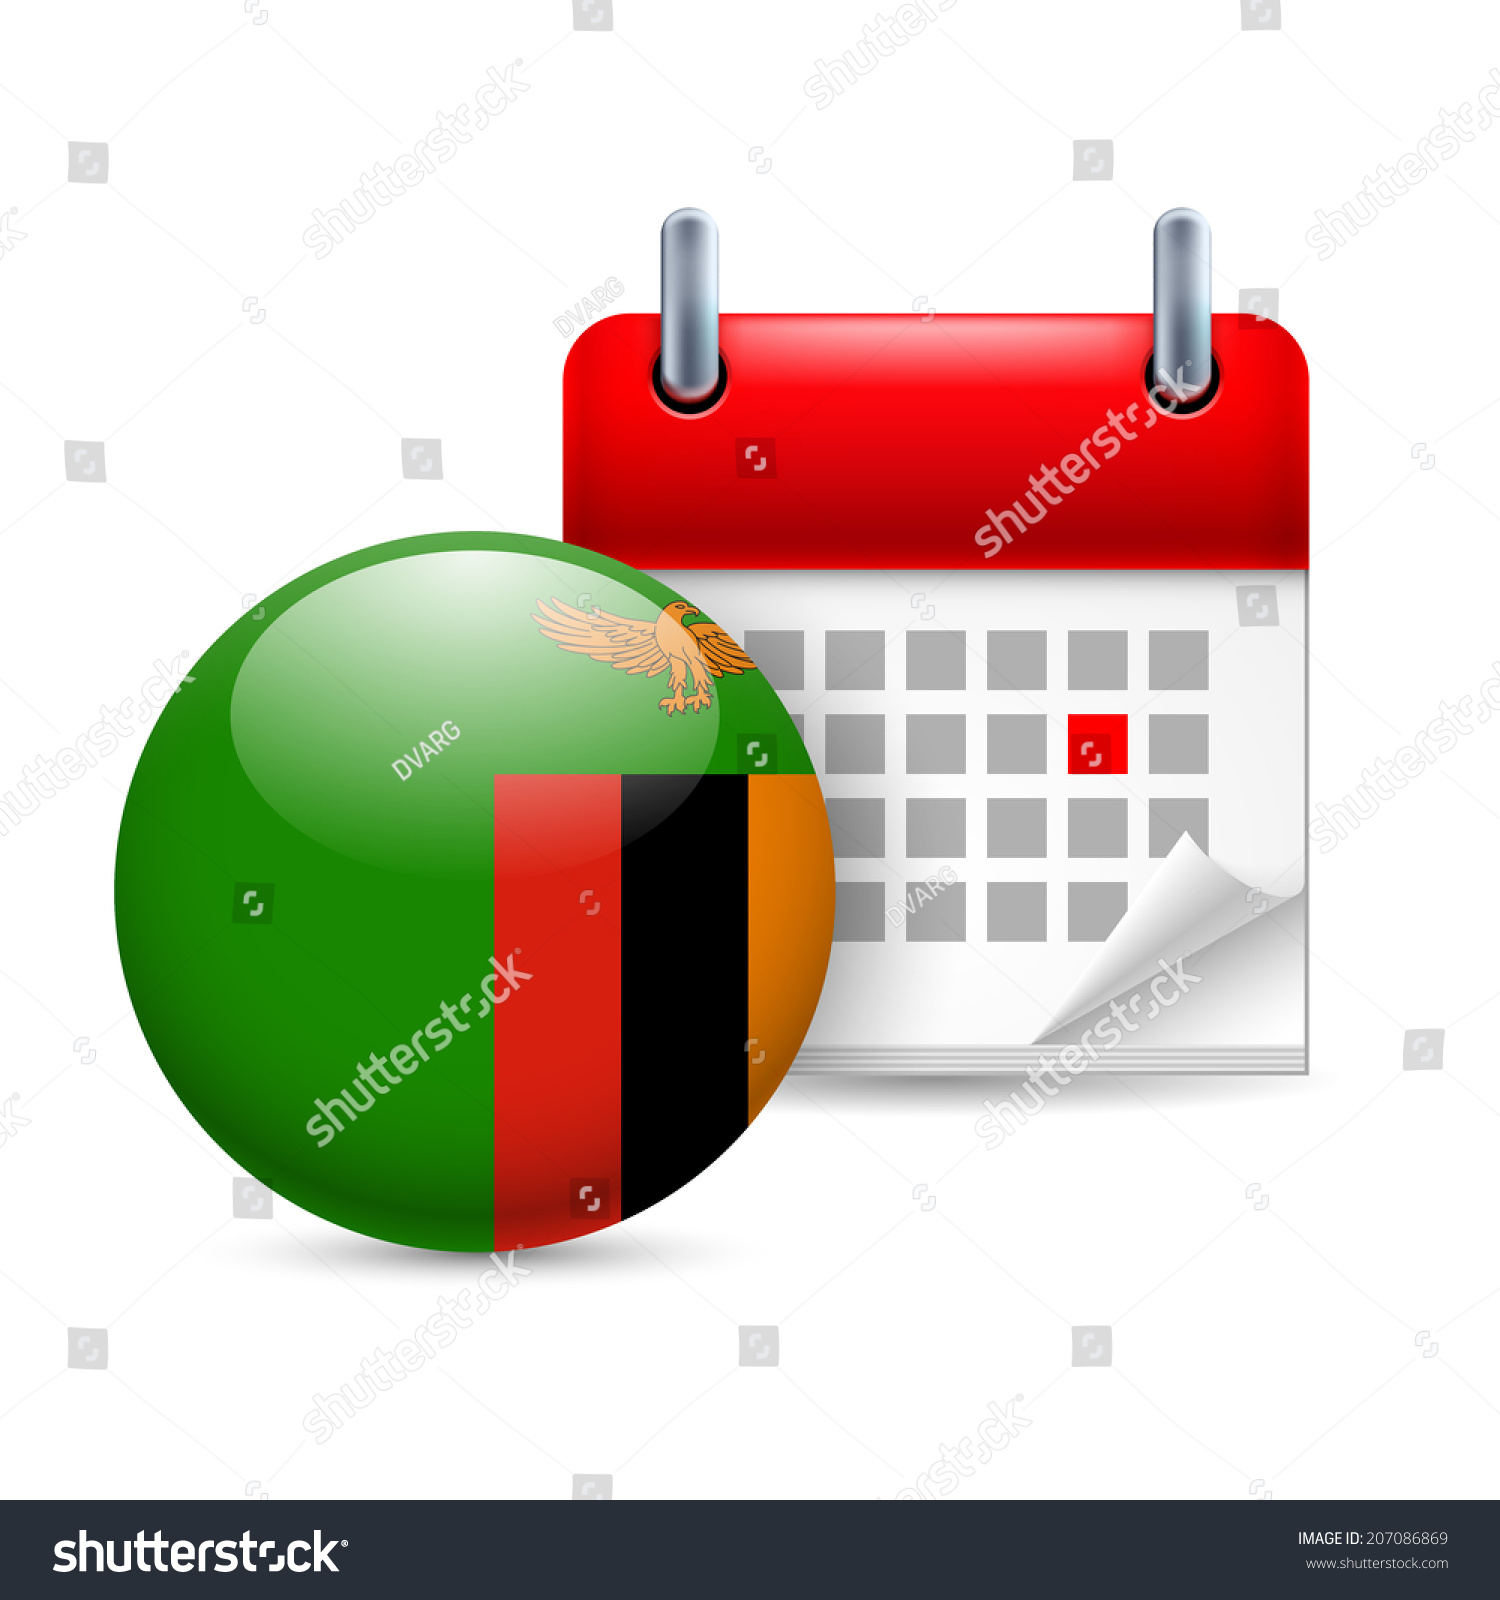 Calendar Zambia : Calendar and round zambian flag icon national holiday in